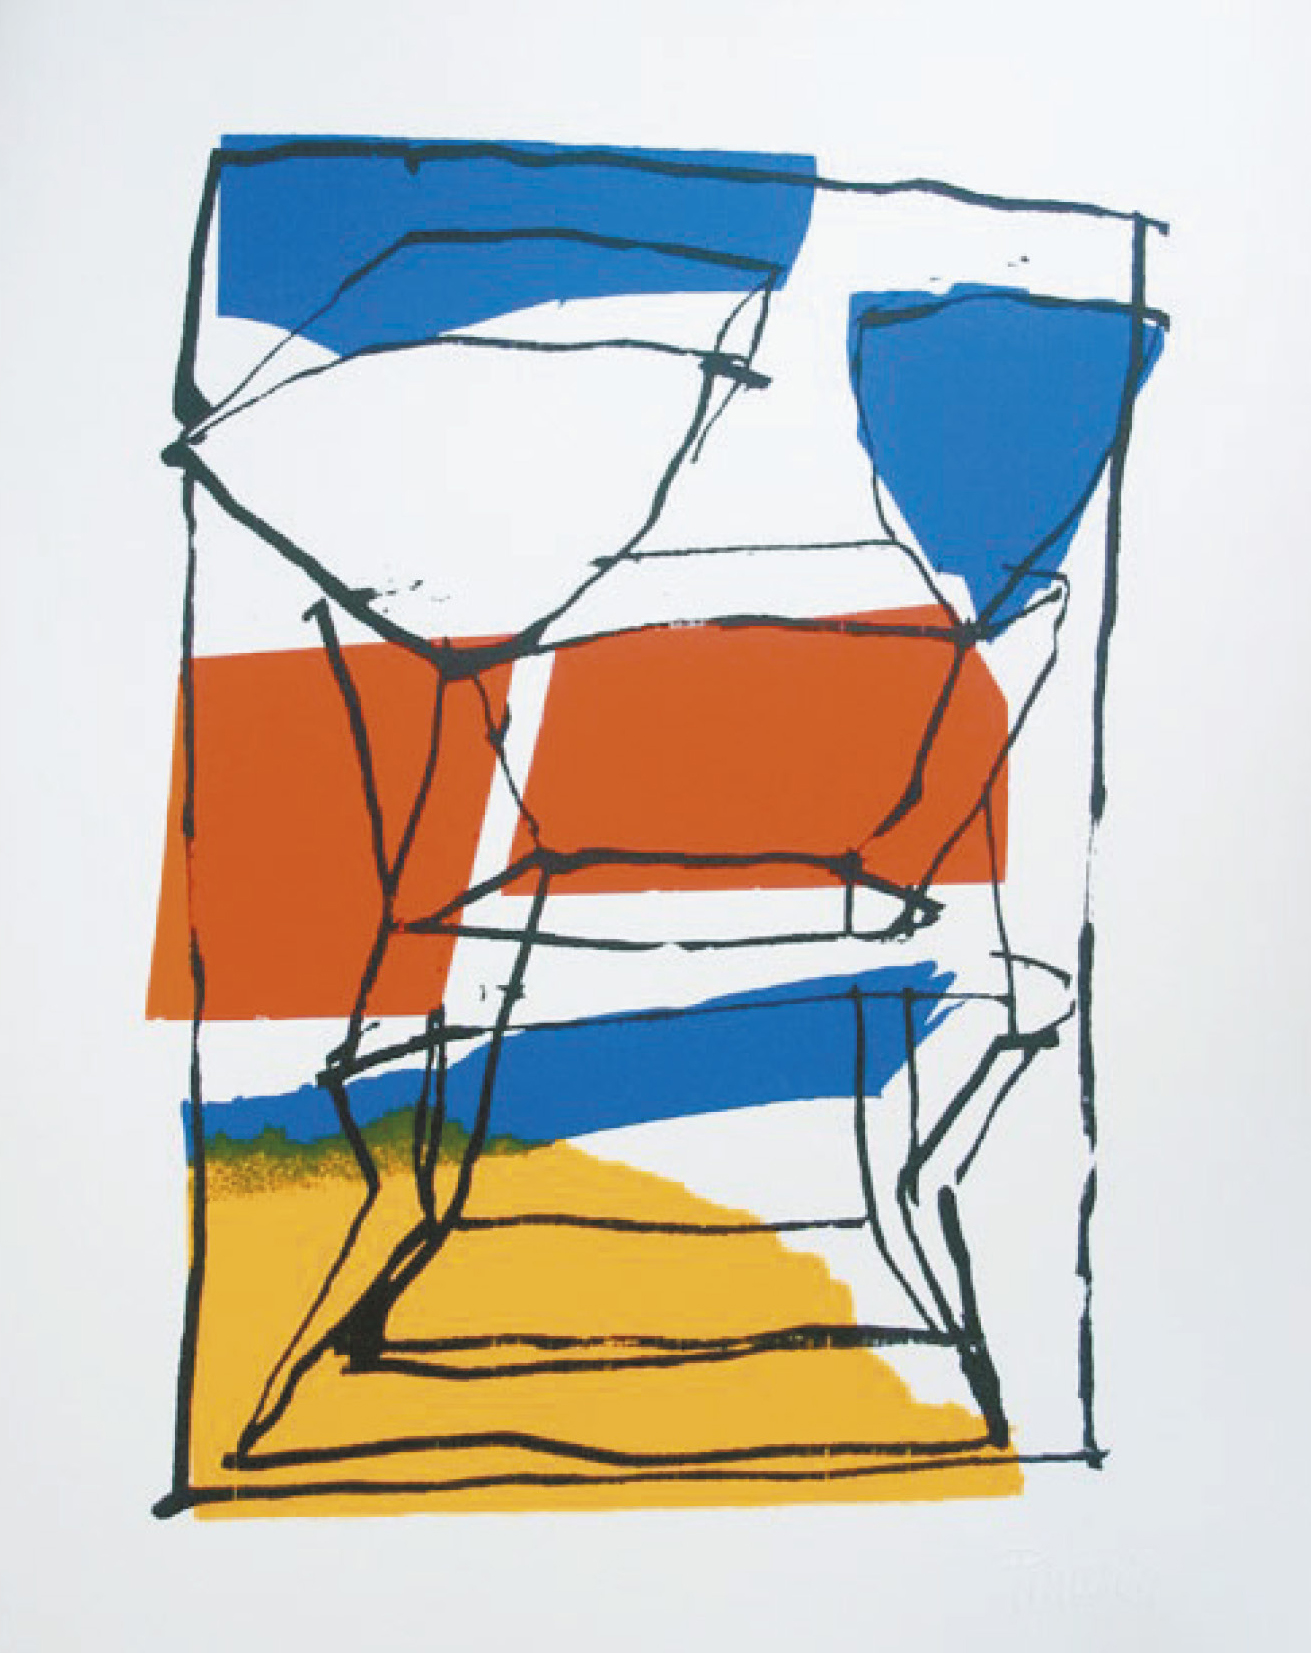 Lot 113 - Pincemin Jean-Pierre (1944) Untitled, 2005 - Serigraph Signed on lower right - 50 x [...]